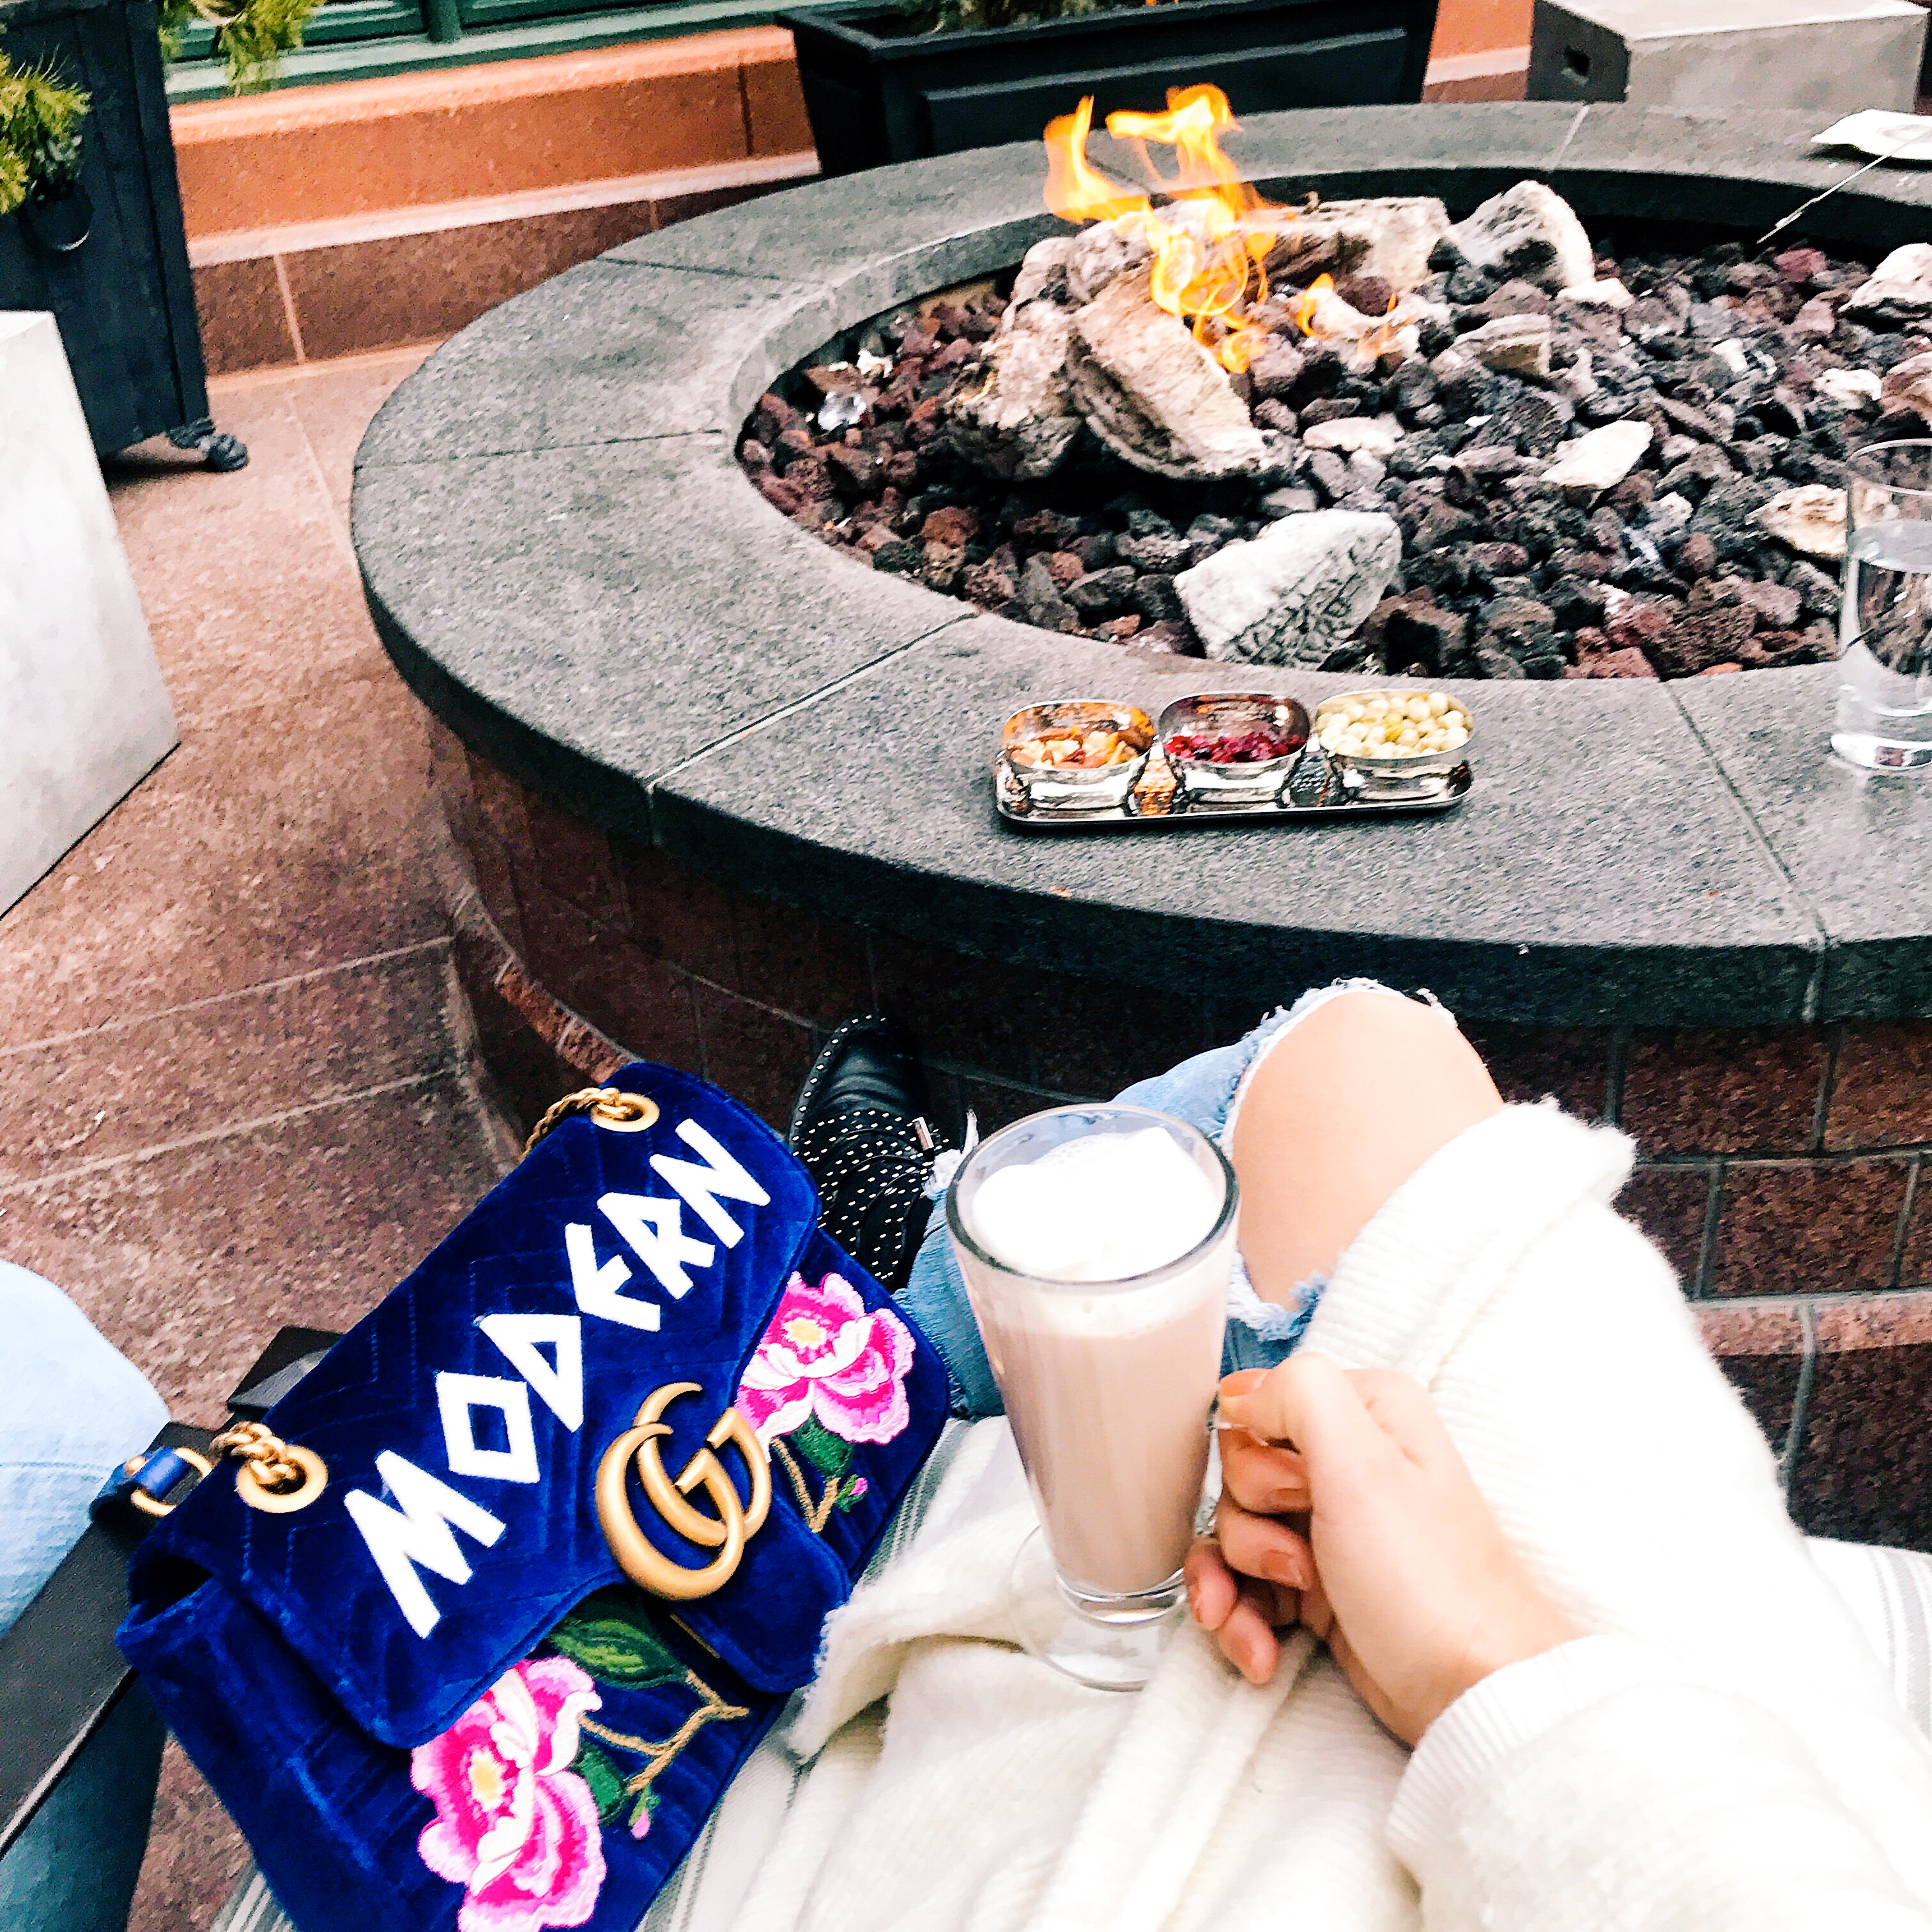 I like to go for hot cocoa and S'mores by the fireplace